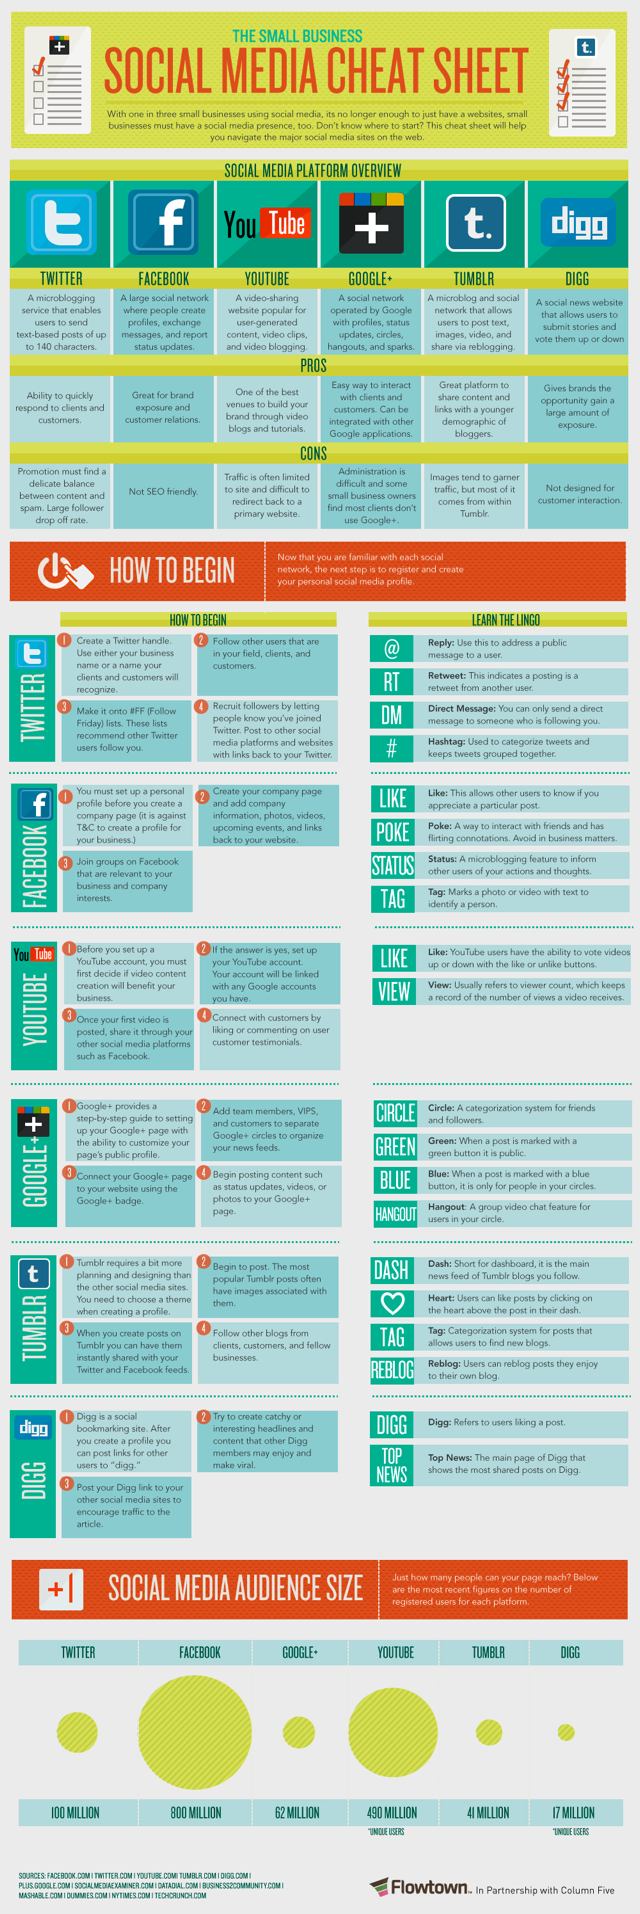 social media cheat sheet for small business